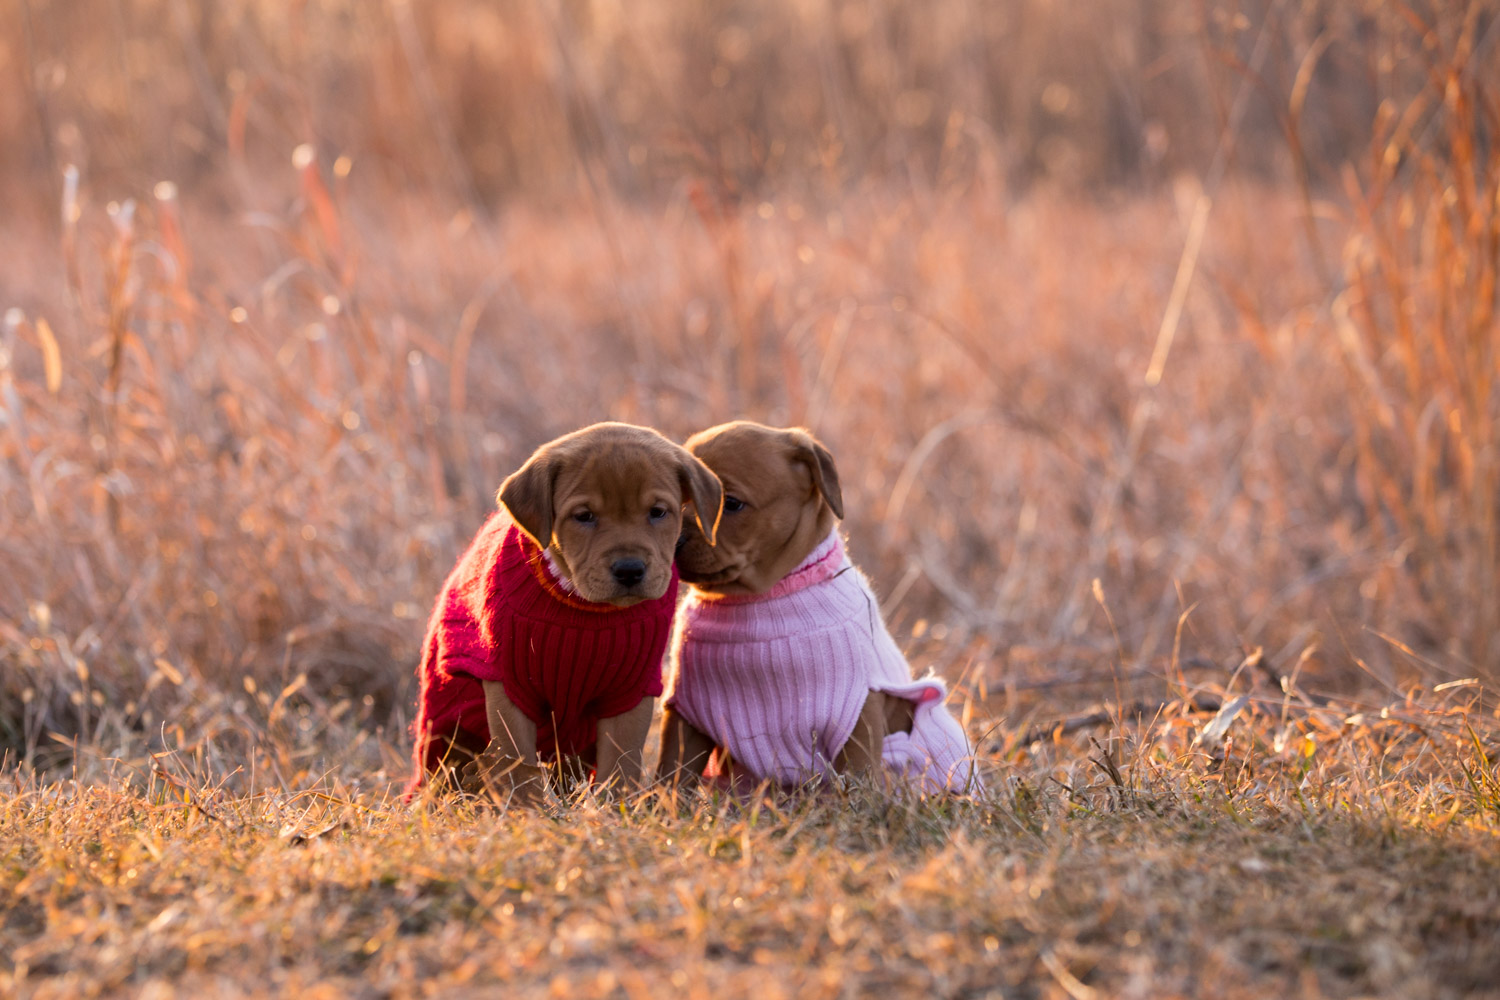 Puppies-blog-12.jpg